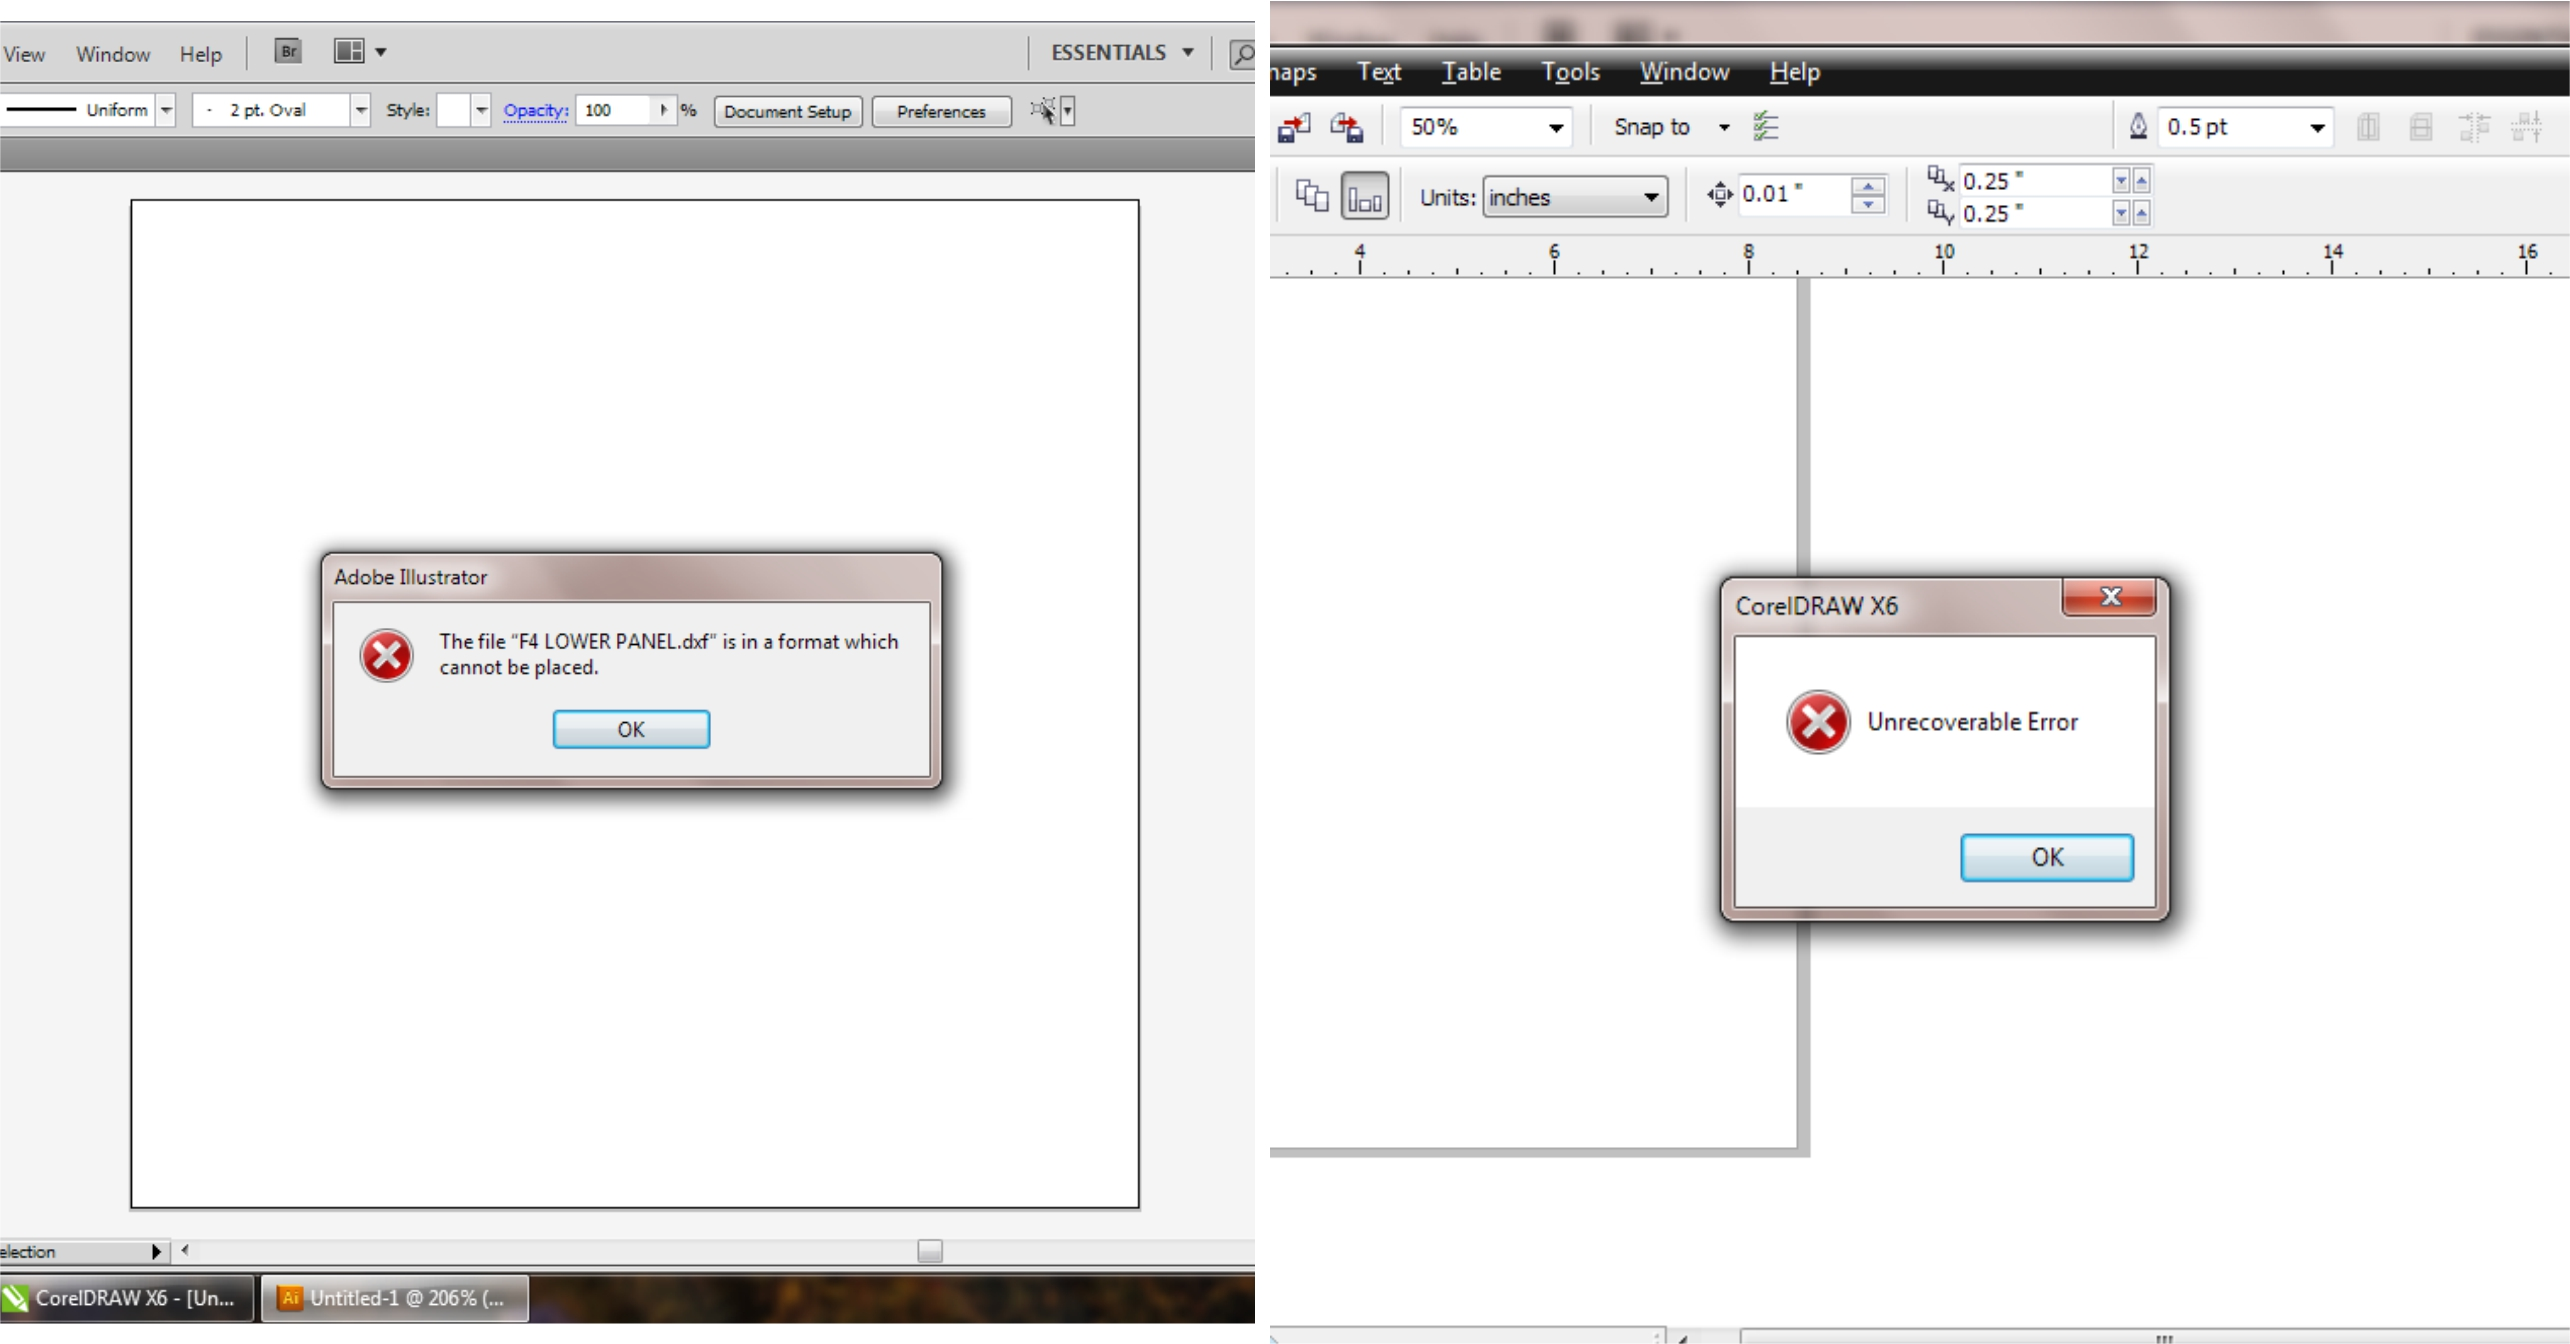 Solved: Can't Open/Import DWG or DXF files in Illustrator or